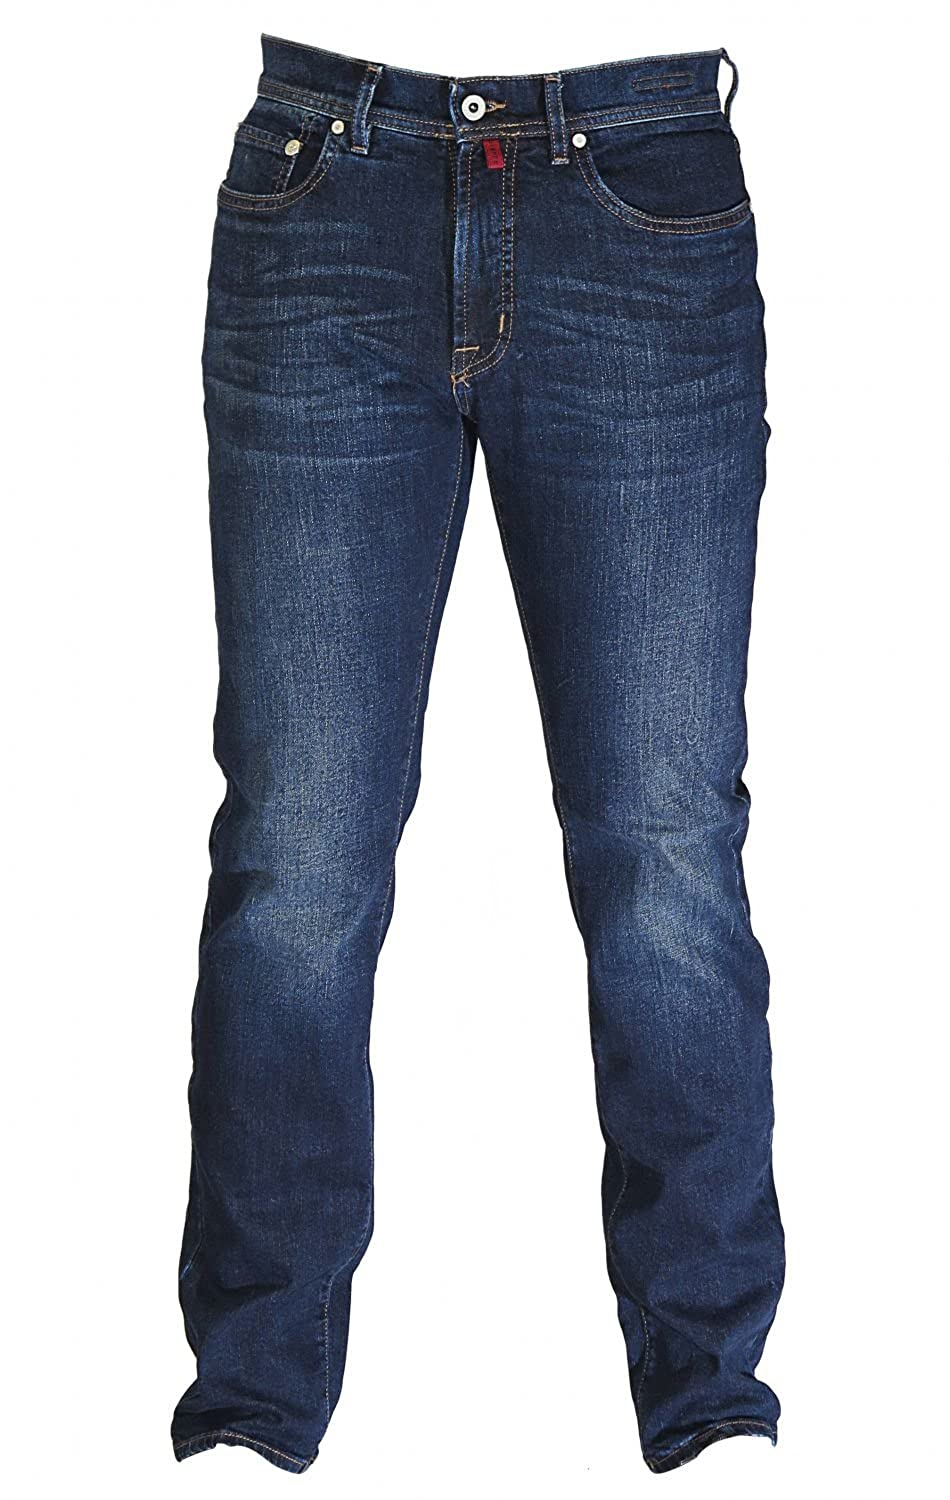 Pierre Cardin LYON - Nr. 3091 - Modern Fit Herren Stretch Jeans - JM Edition